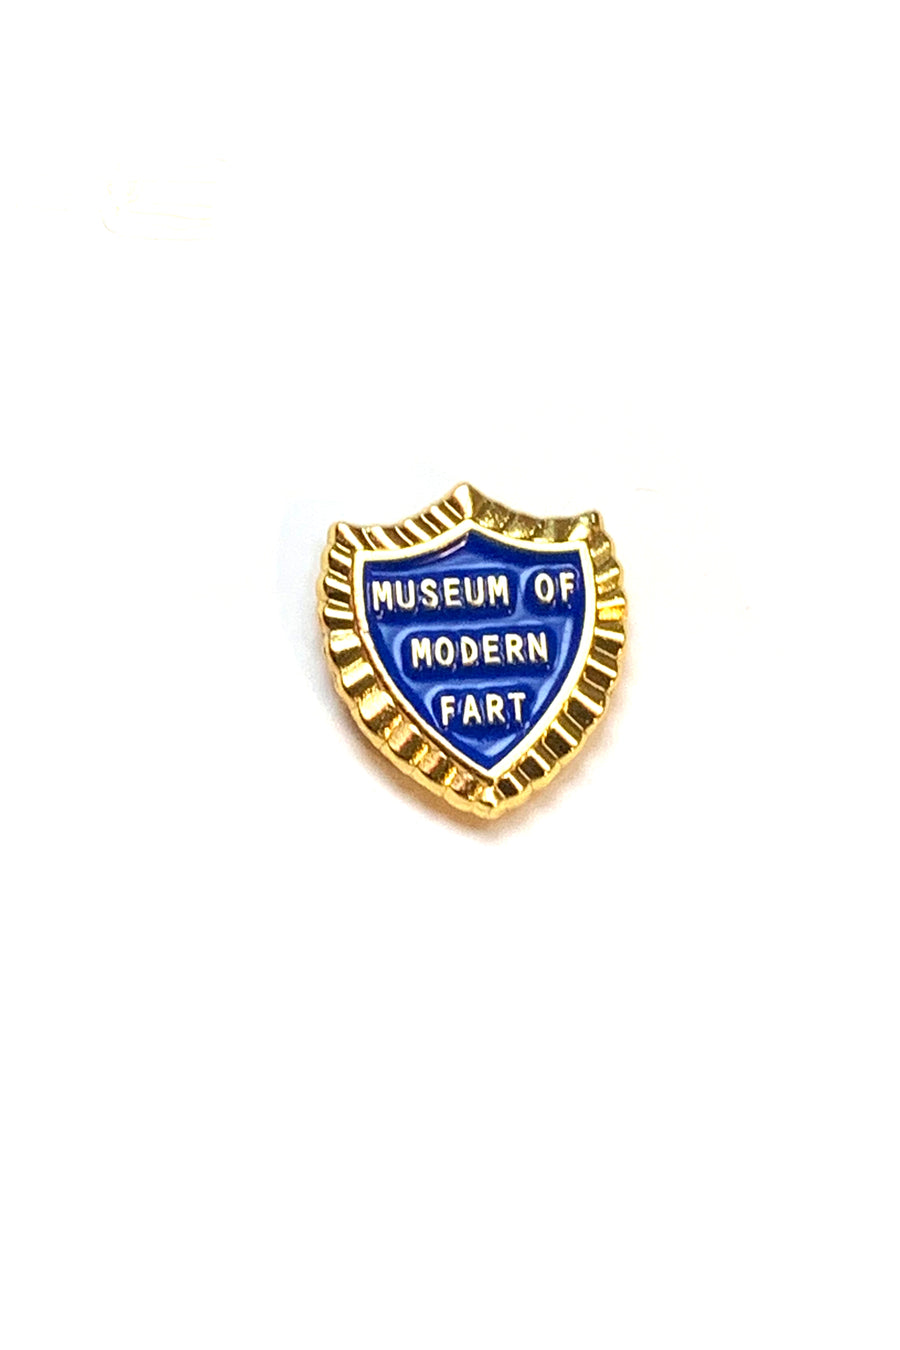 Museum of Modern Fart Lapel Pin